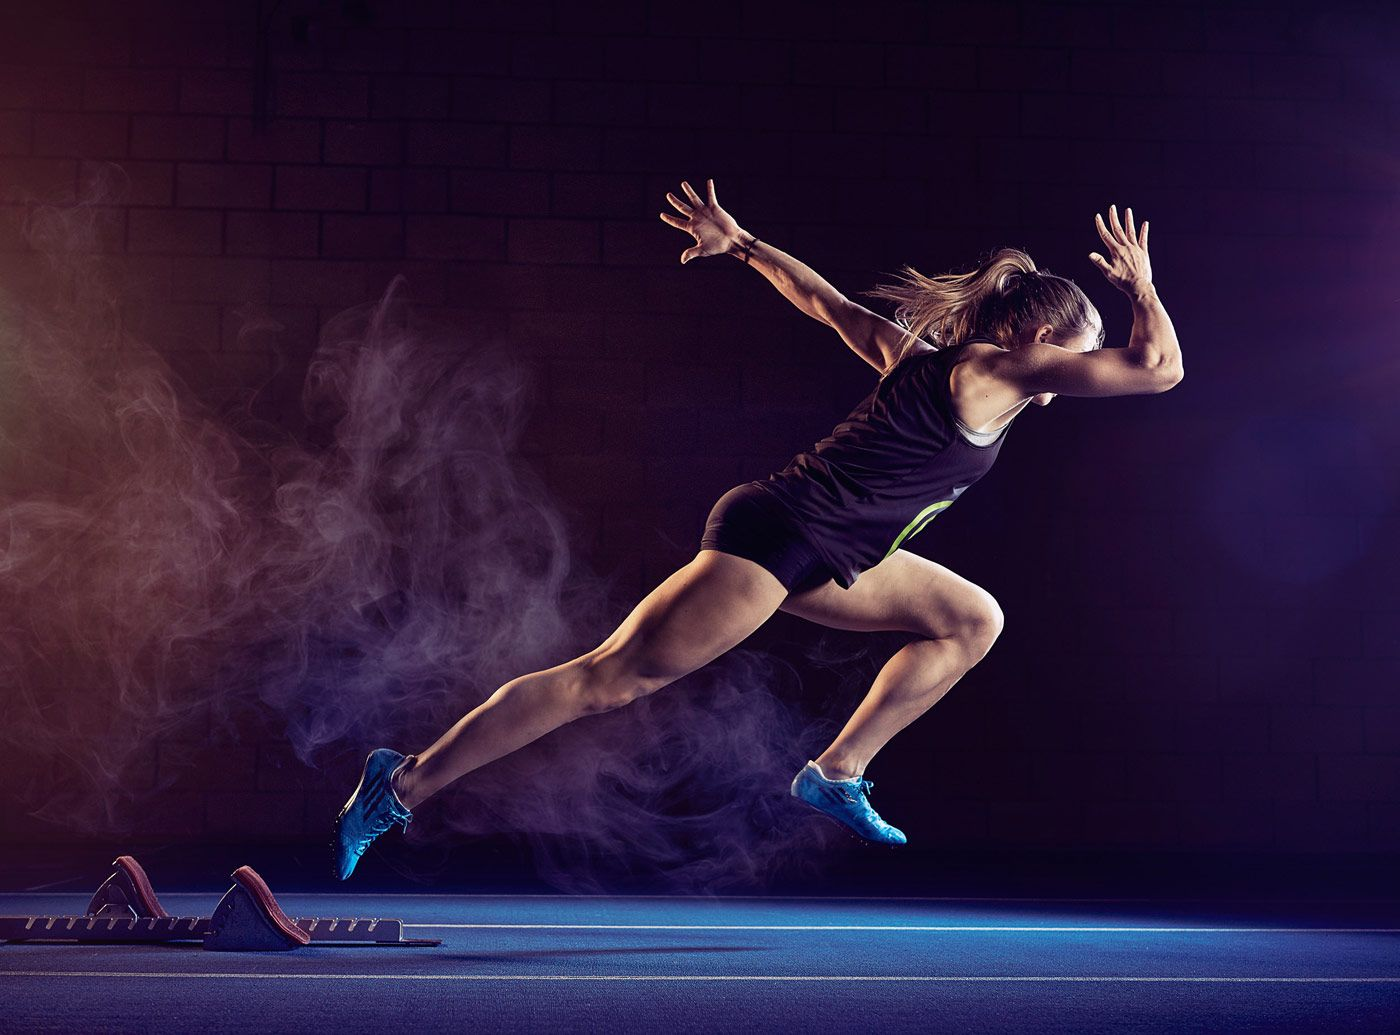 A Female Sprinter Launching Out Of The Blocks Female Sprinter Running Photography Track Senior Pictures